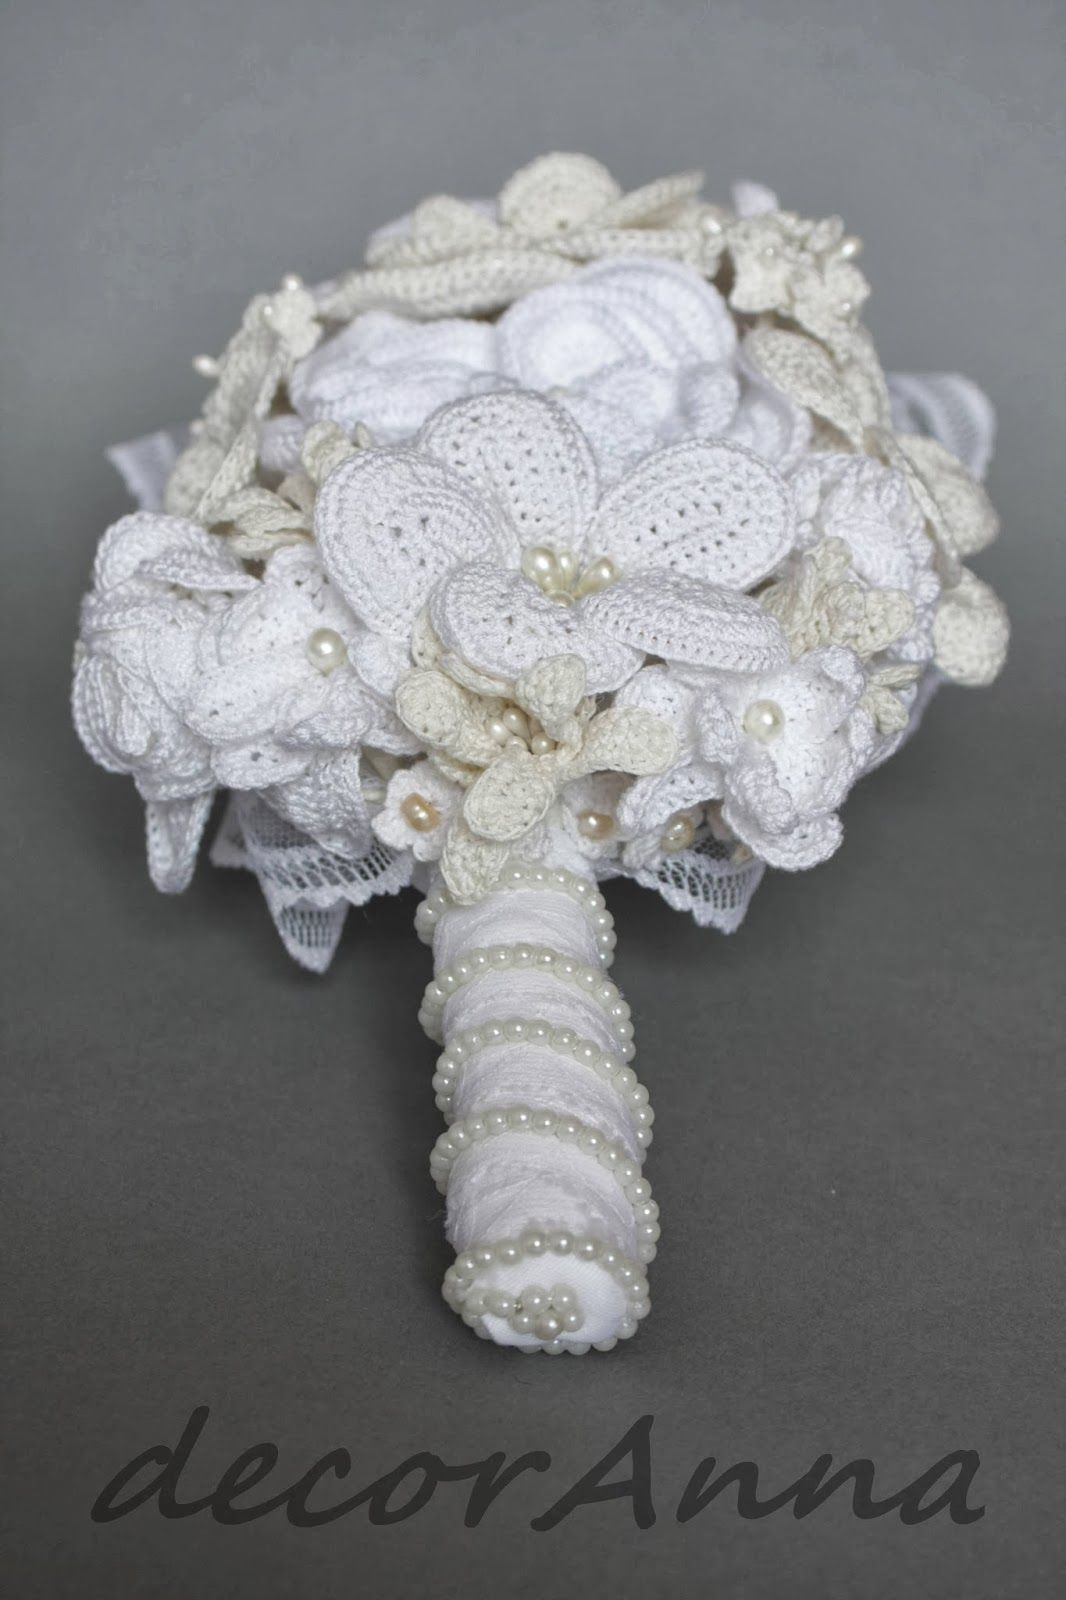 Ivory crochet wedding bouquet visit my etsy shop httpsetsy ivory crochet wedding bouquet visit my etsy shop httpsetsylisting176086935wedding eco bouquet ivory flowers refshophomeactive2 izmirmasajfo